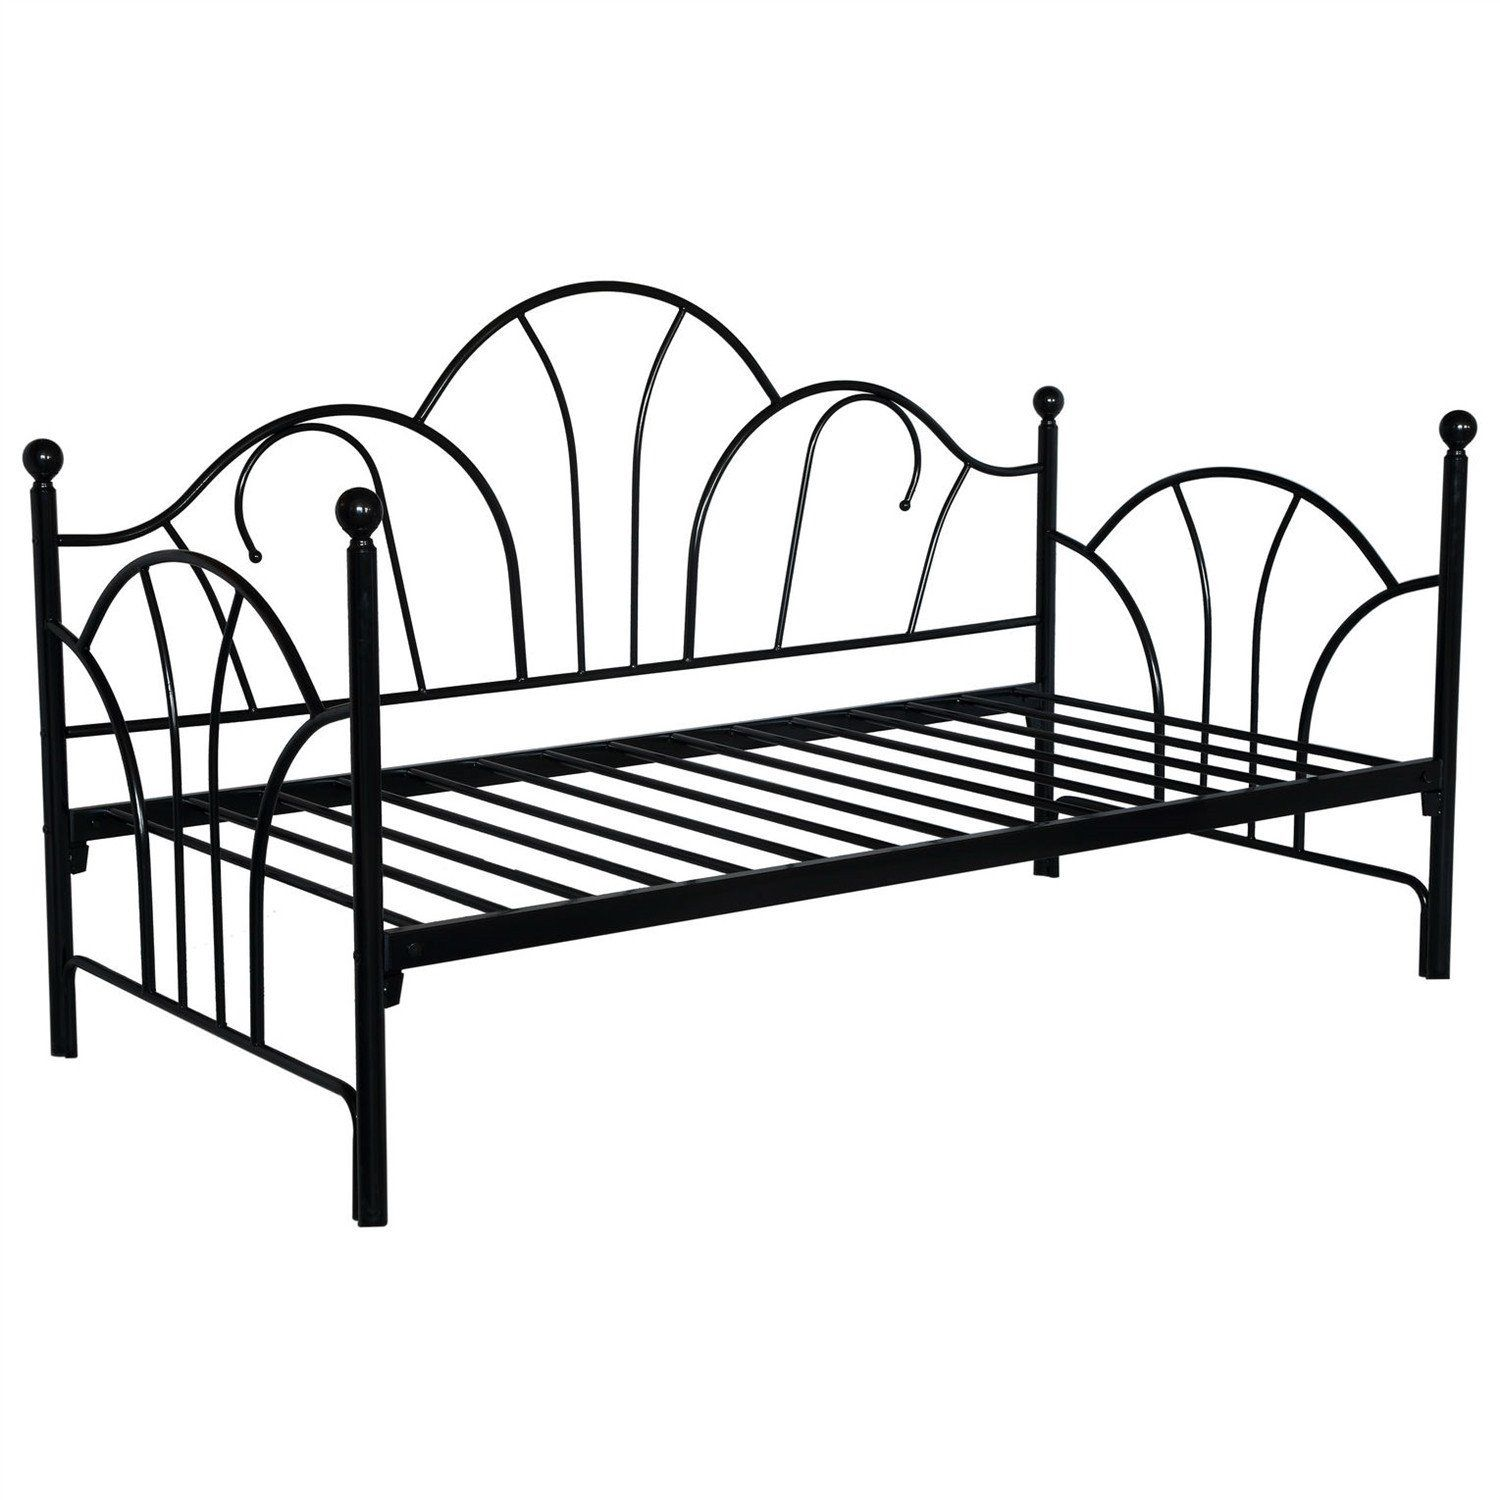 Size Contemporary Black Metal Day Bed Frame With Slats